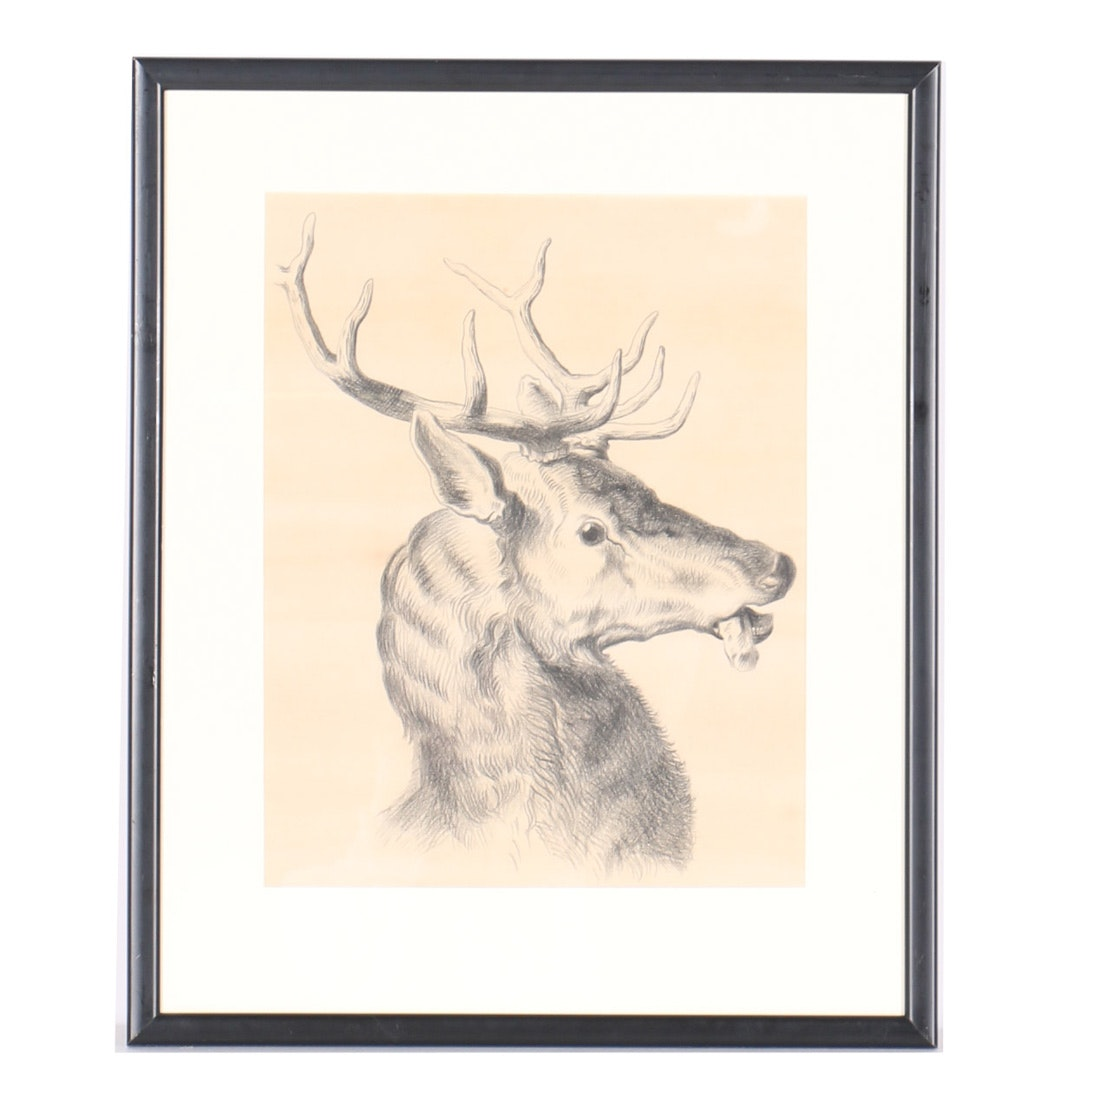 Emily B. Waite Charcoal Drawing of a Deer